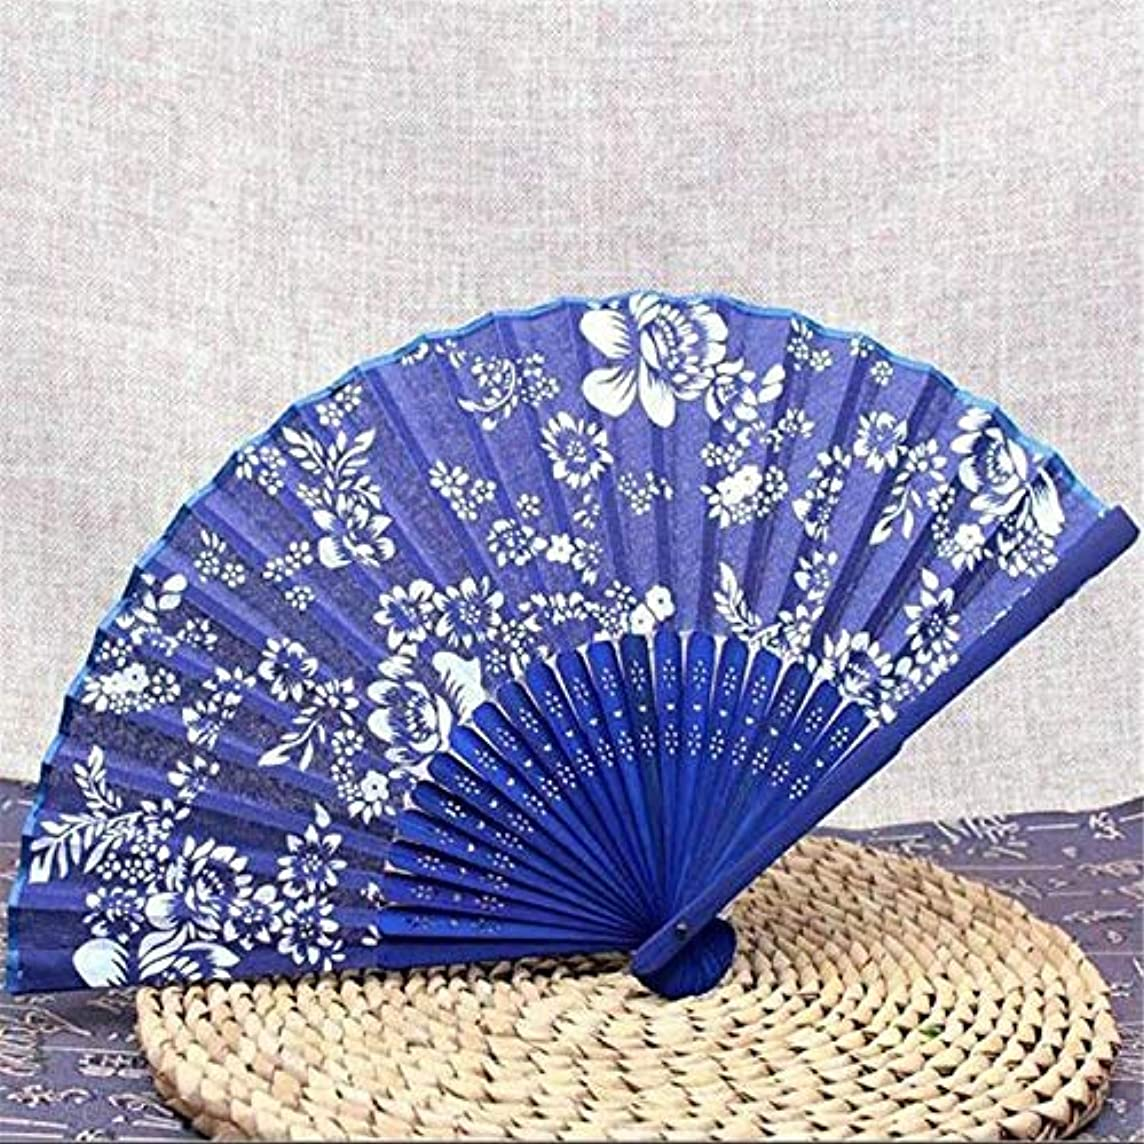 Party Favors - 2019 Chinese Blue And White Porcelain Silk Fan Classical Folding Cloth Bamboo Handle Retro Gift - Dinnerware Dragon Pill Decor White Bowls Fabric Balls Teapot Mugs Gown Dishes Dis